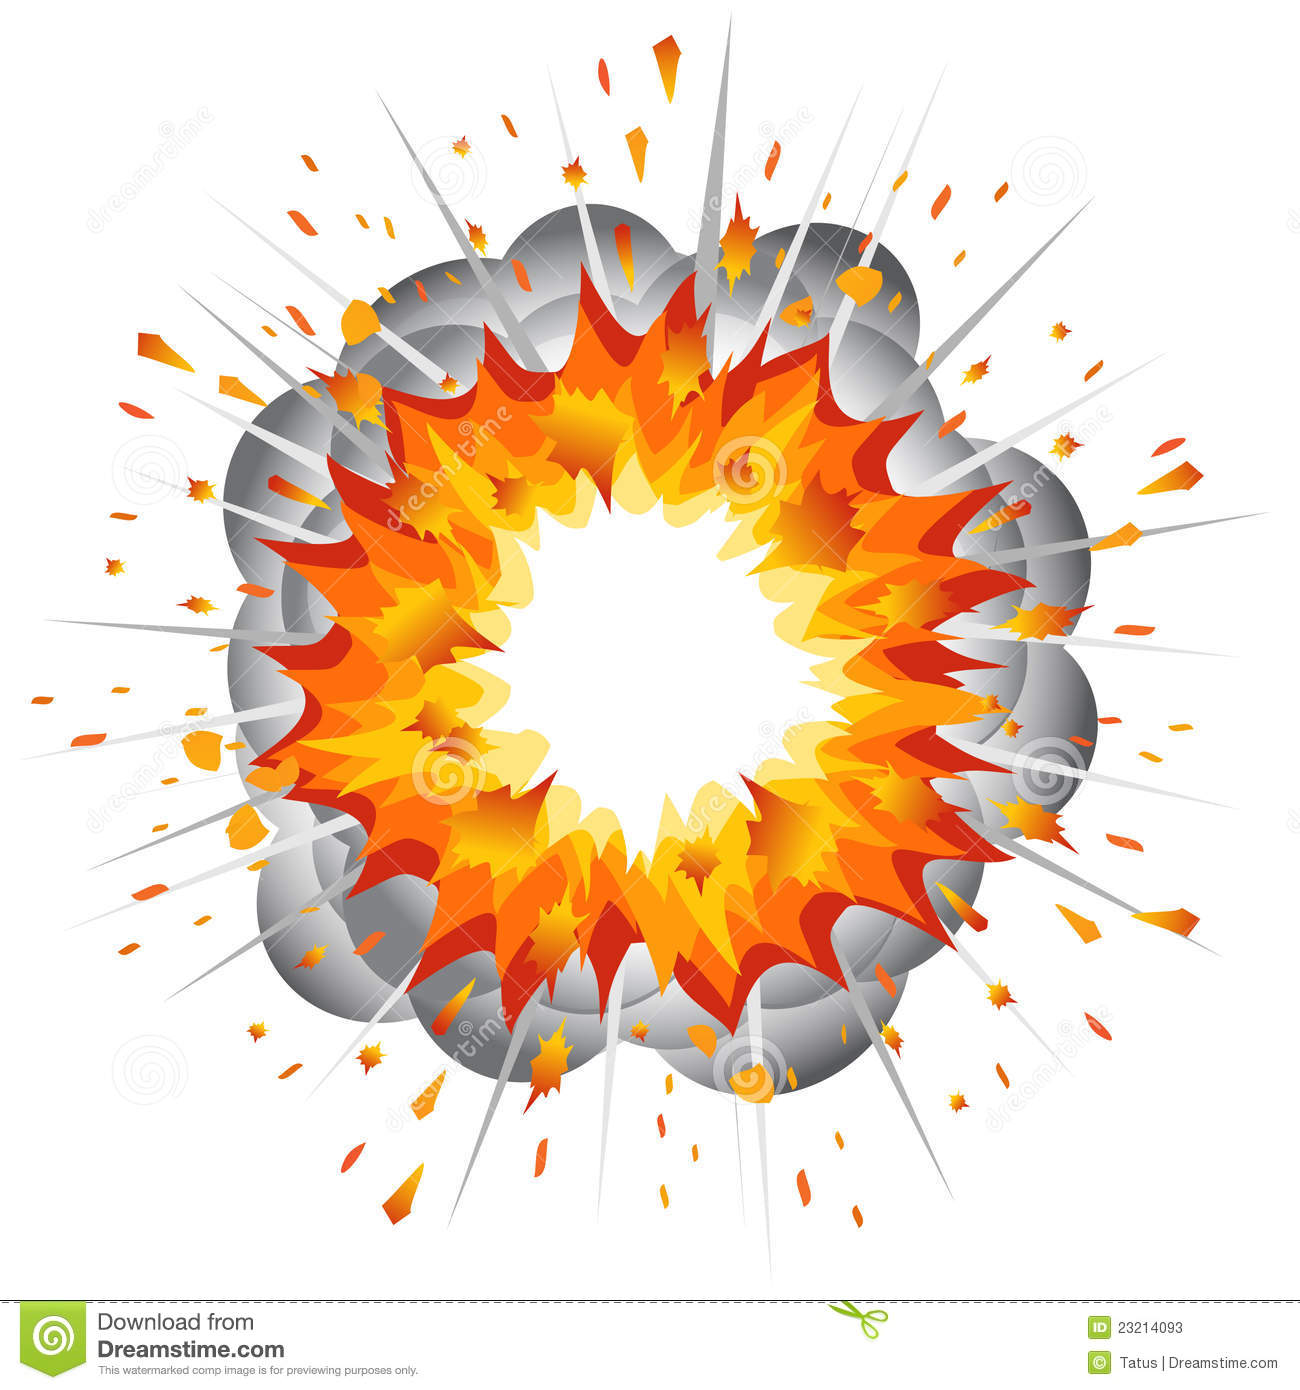 clipart explosion download - photo #44